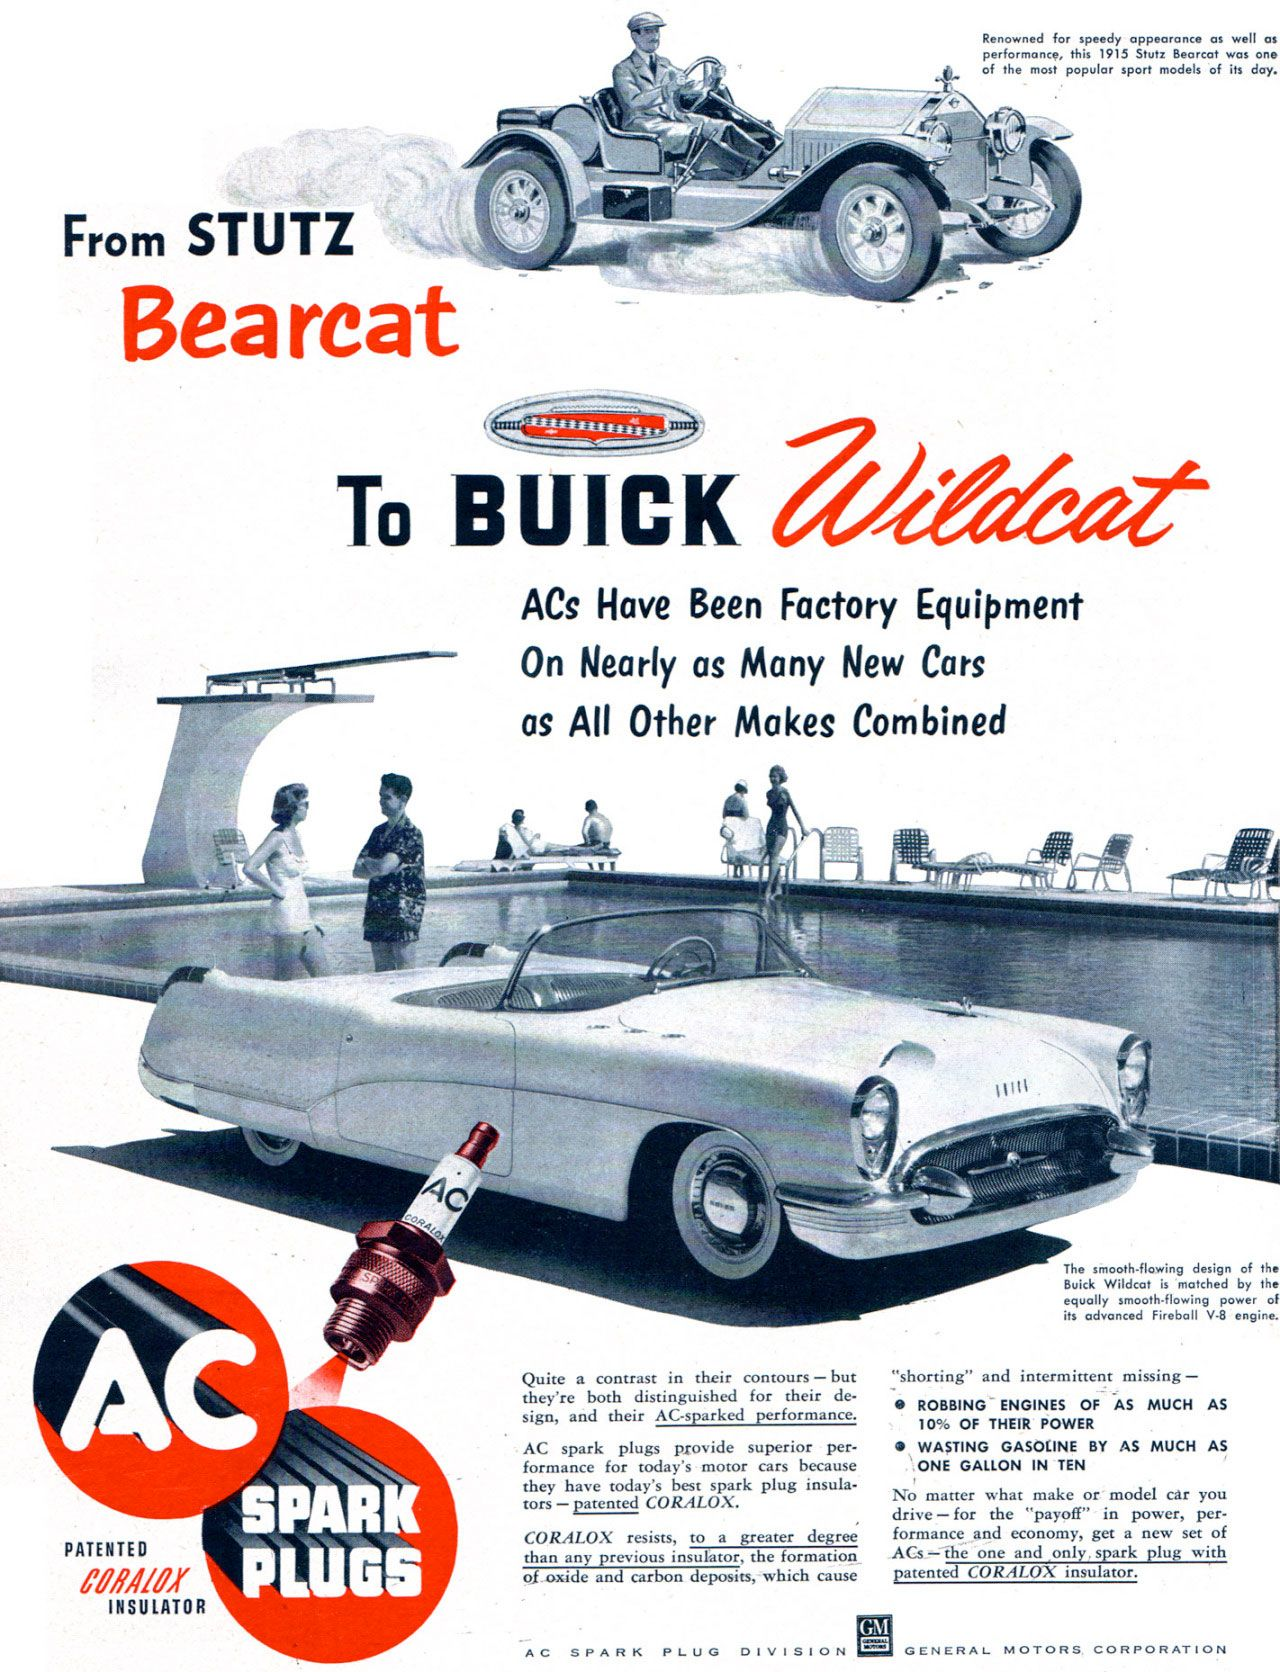 From Stutz Bearcat to Buick Wildcat, AC Spark Plugs have been factory equipment on nearly as many new cars as all other makes combined.